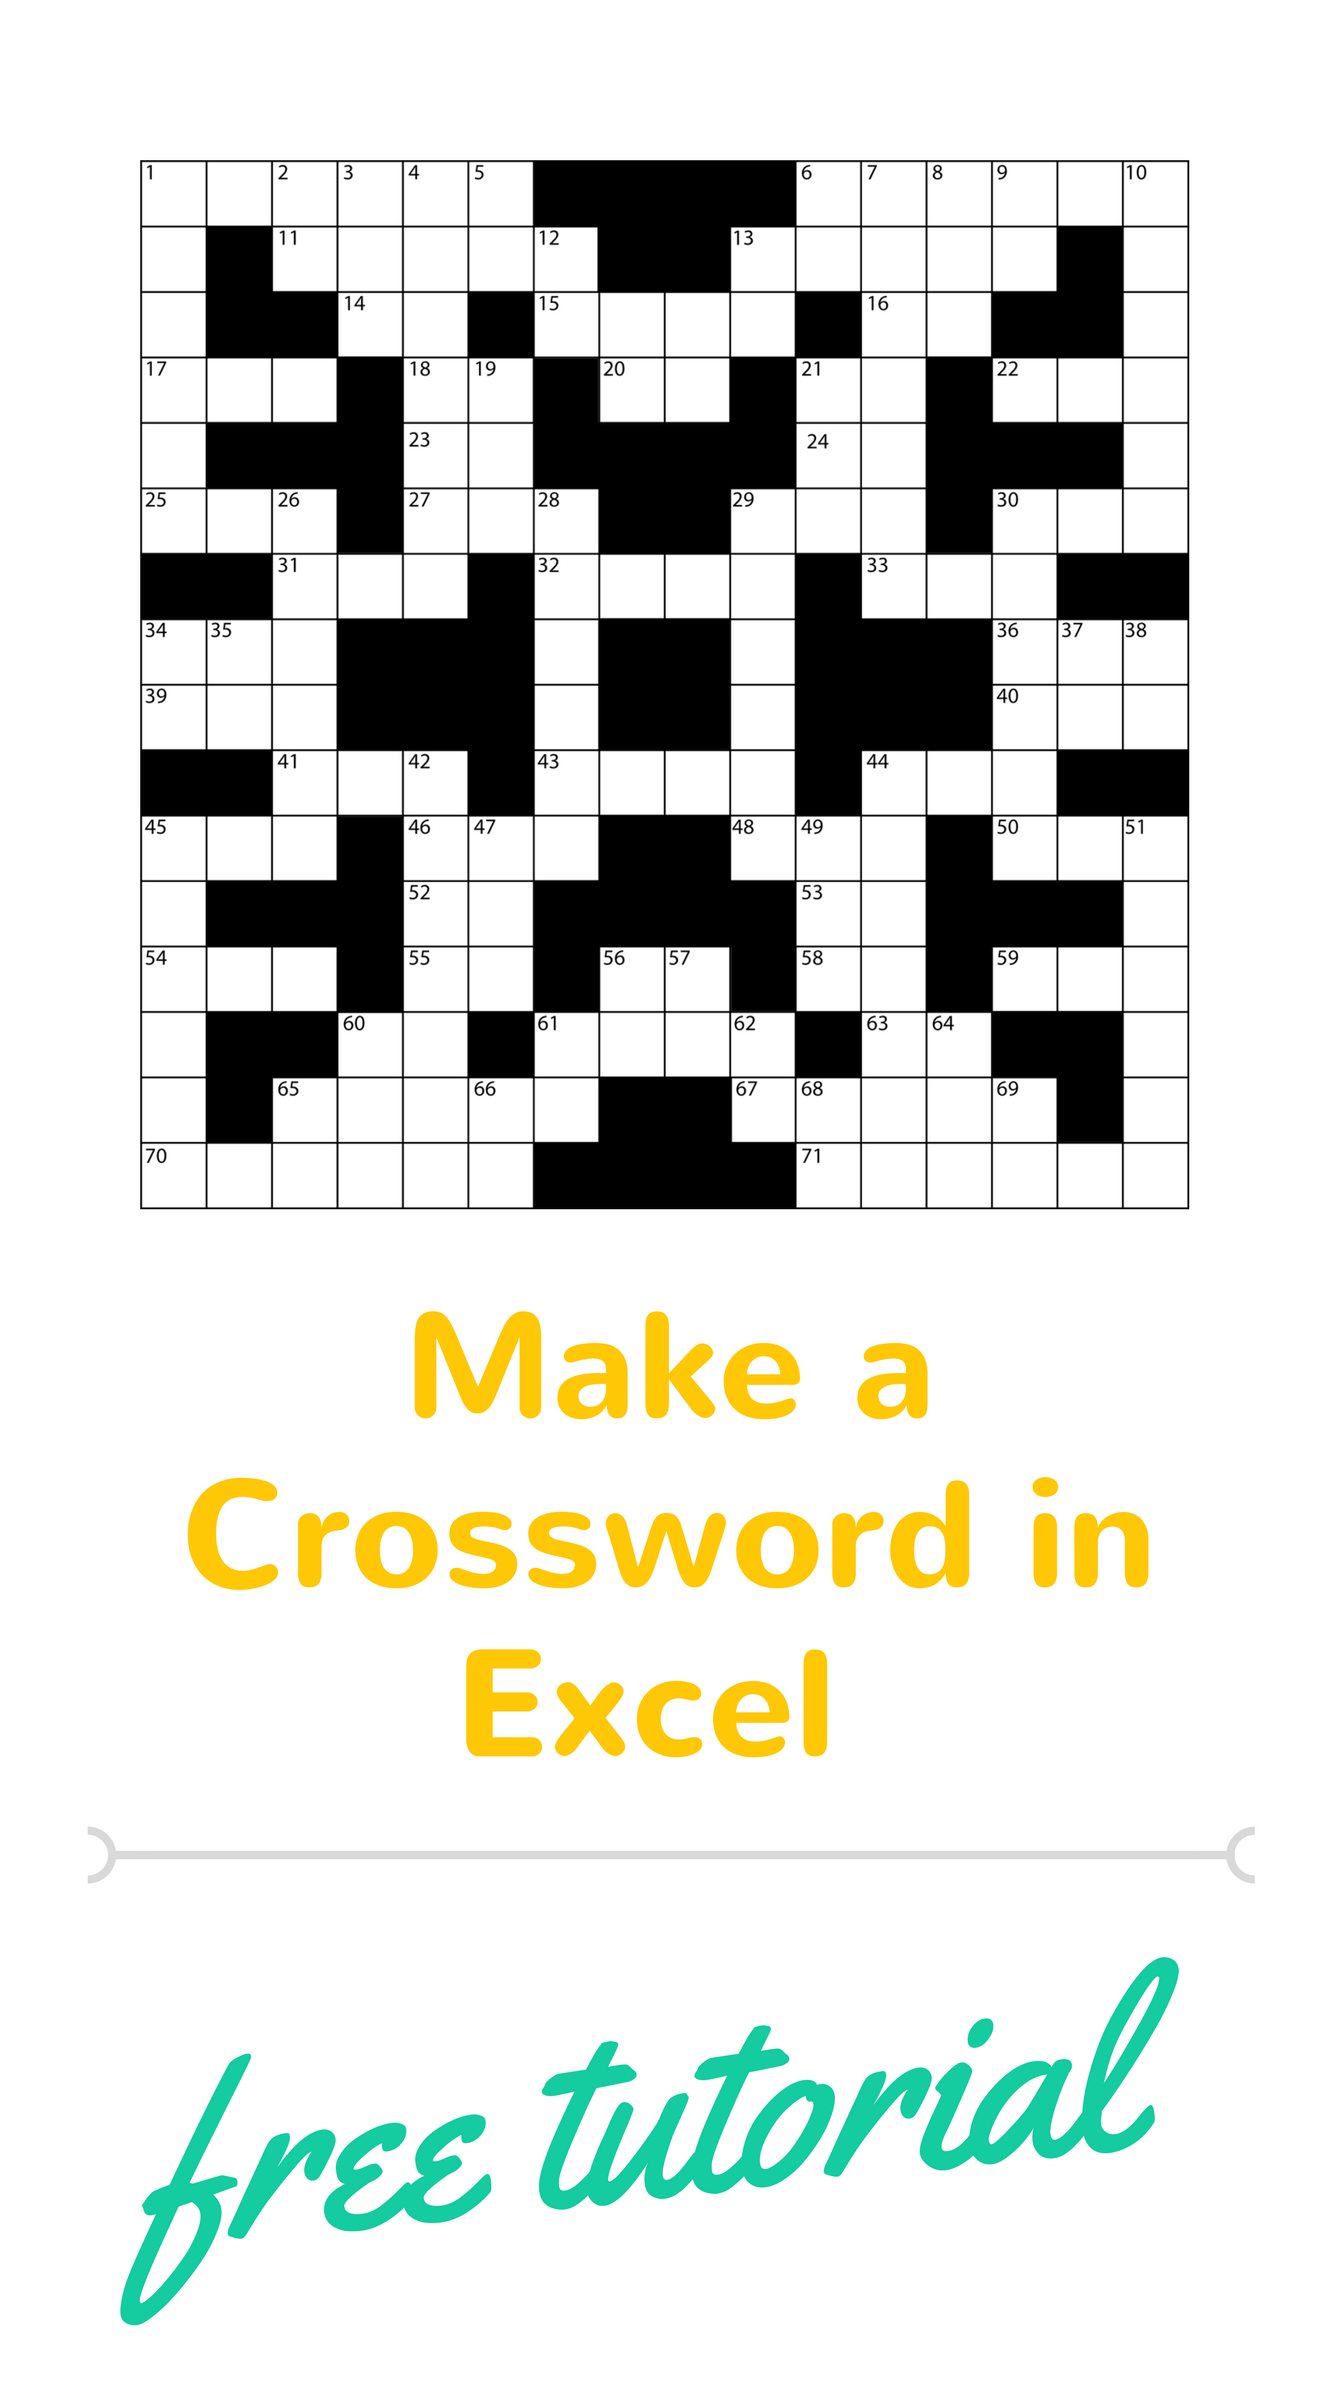 Tutorial On How To Make A Crossword Puzzle In Excel This Way Your Puzzle Can Have The Words You Want For T Excel Tutorials Crossword Puzzles Crossword Puzzle